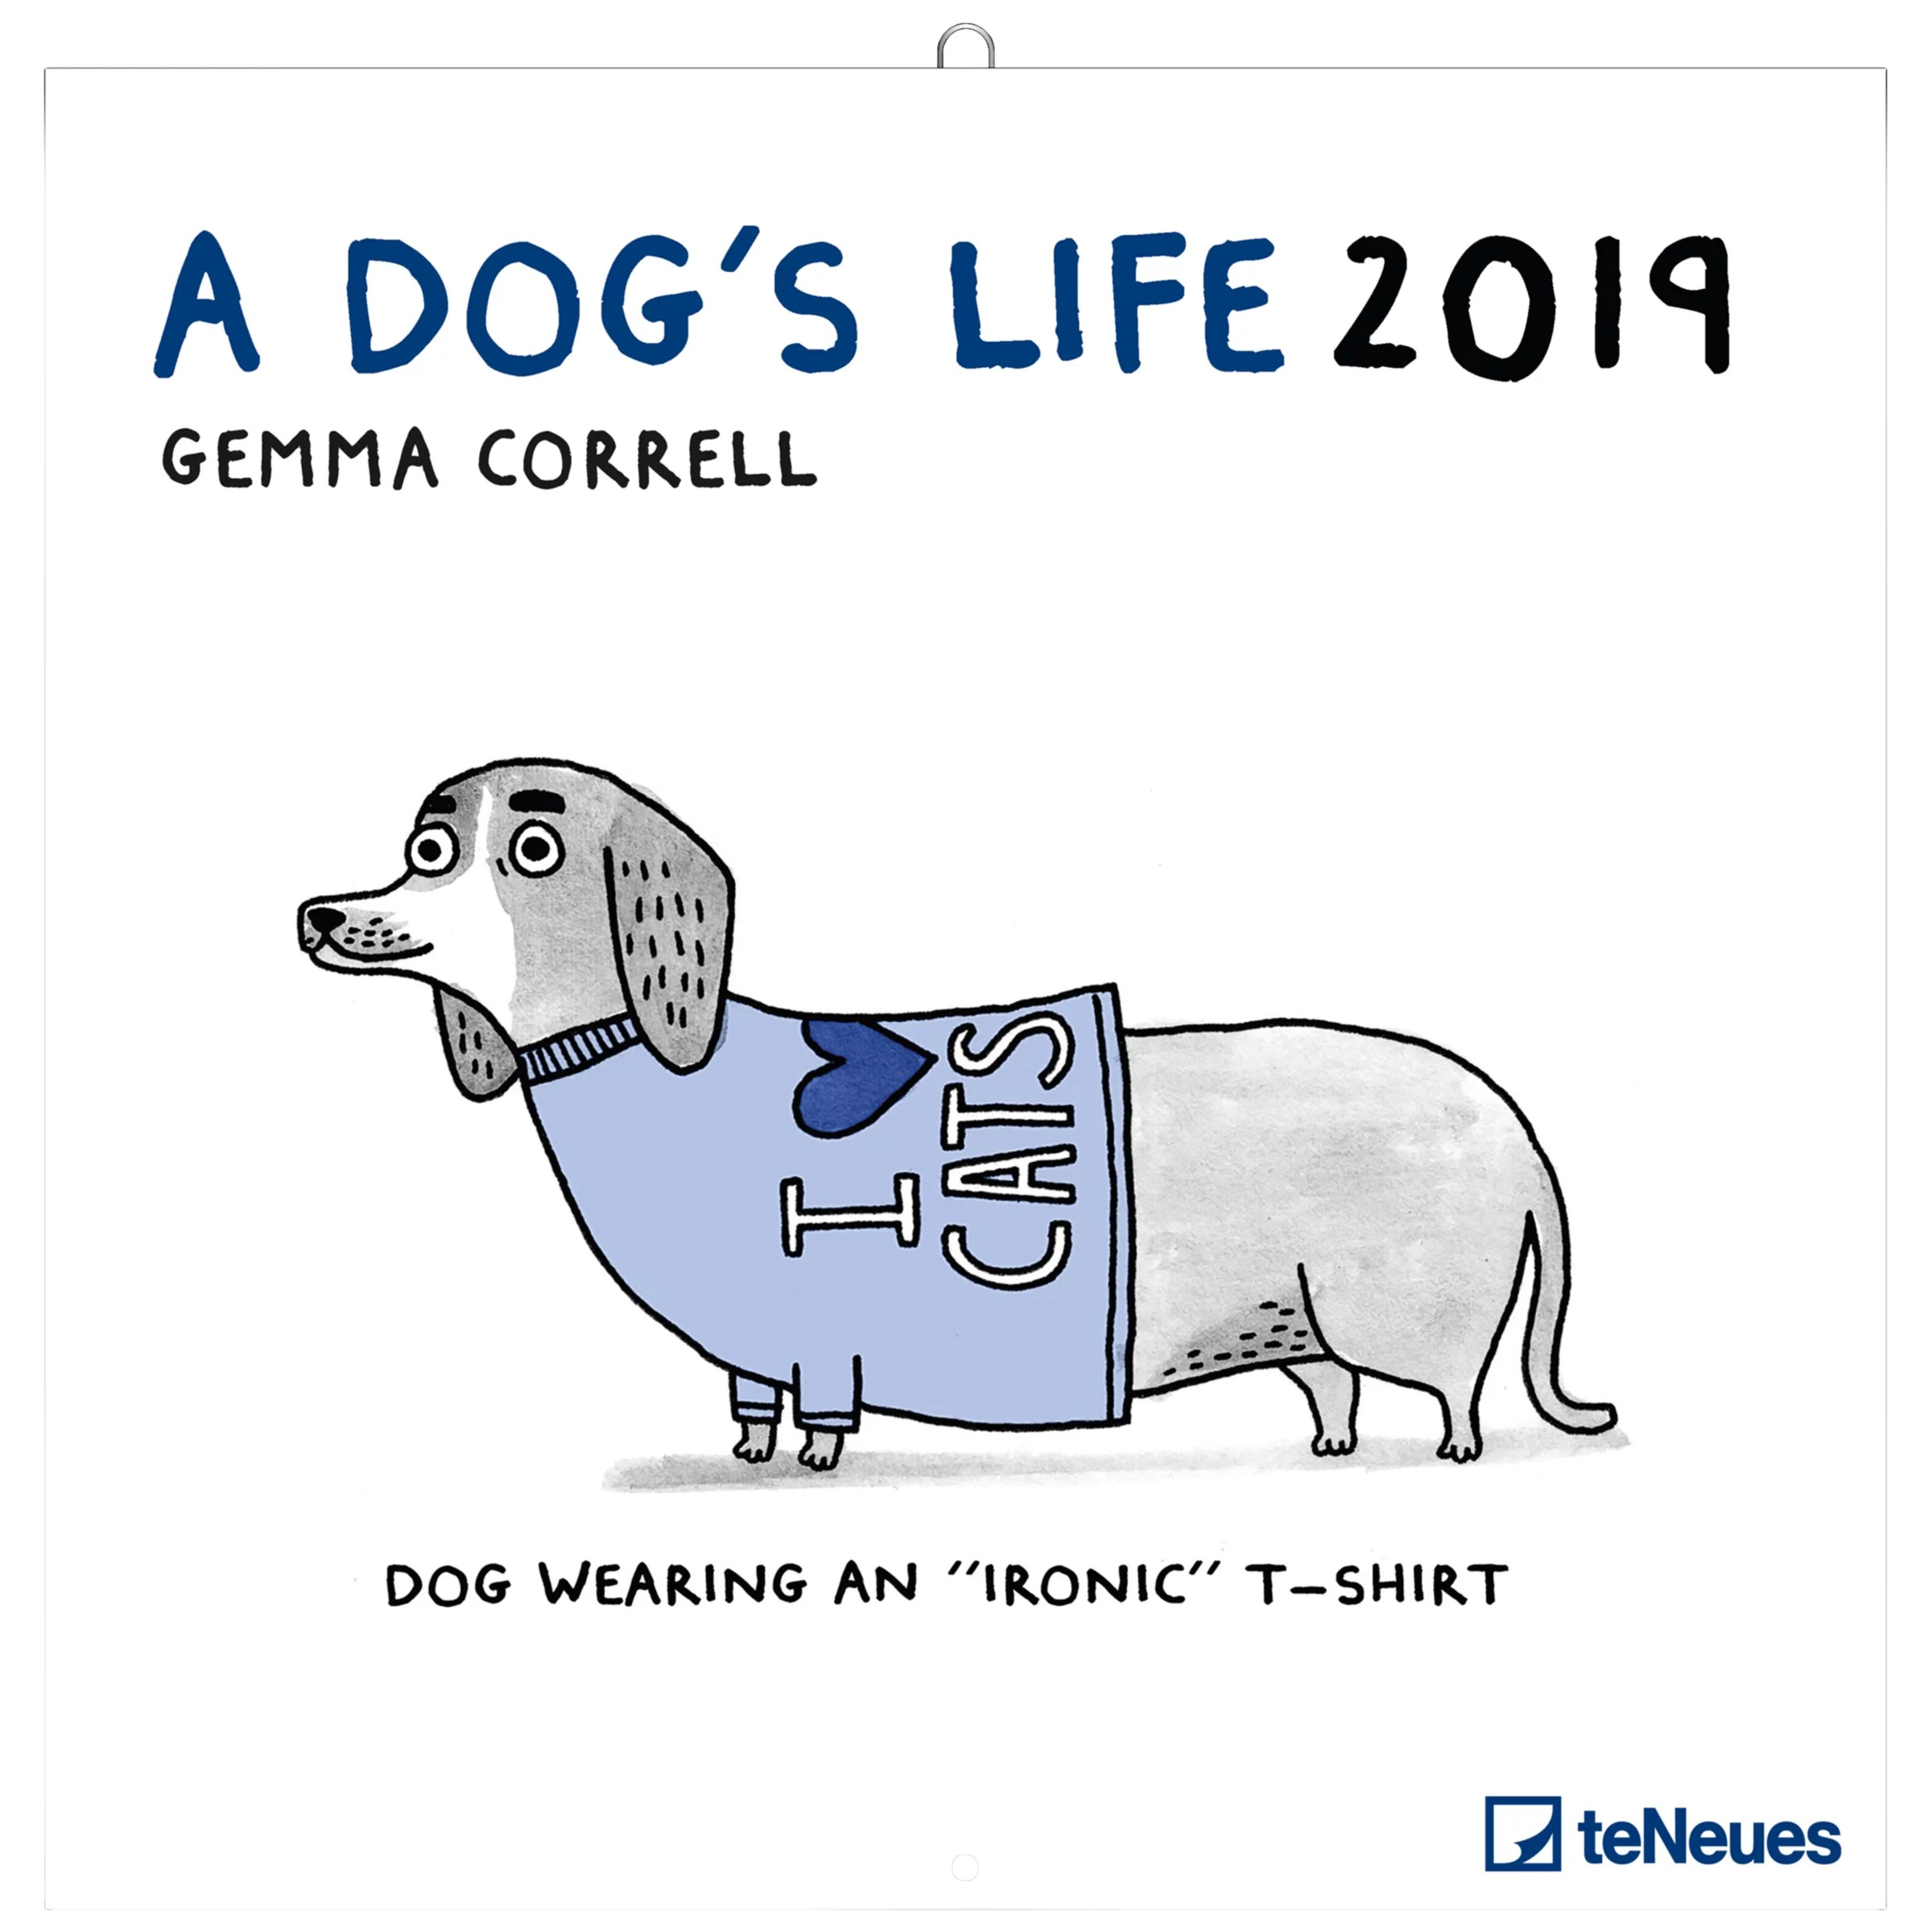 buyteneues gemma correll dogs life square 2019 calendar online at johnlewis com [ 1440 x 1920 Pixel ]